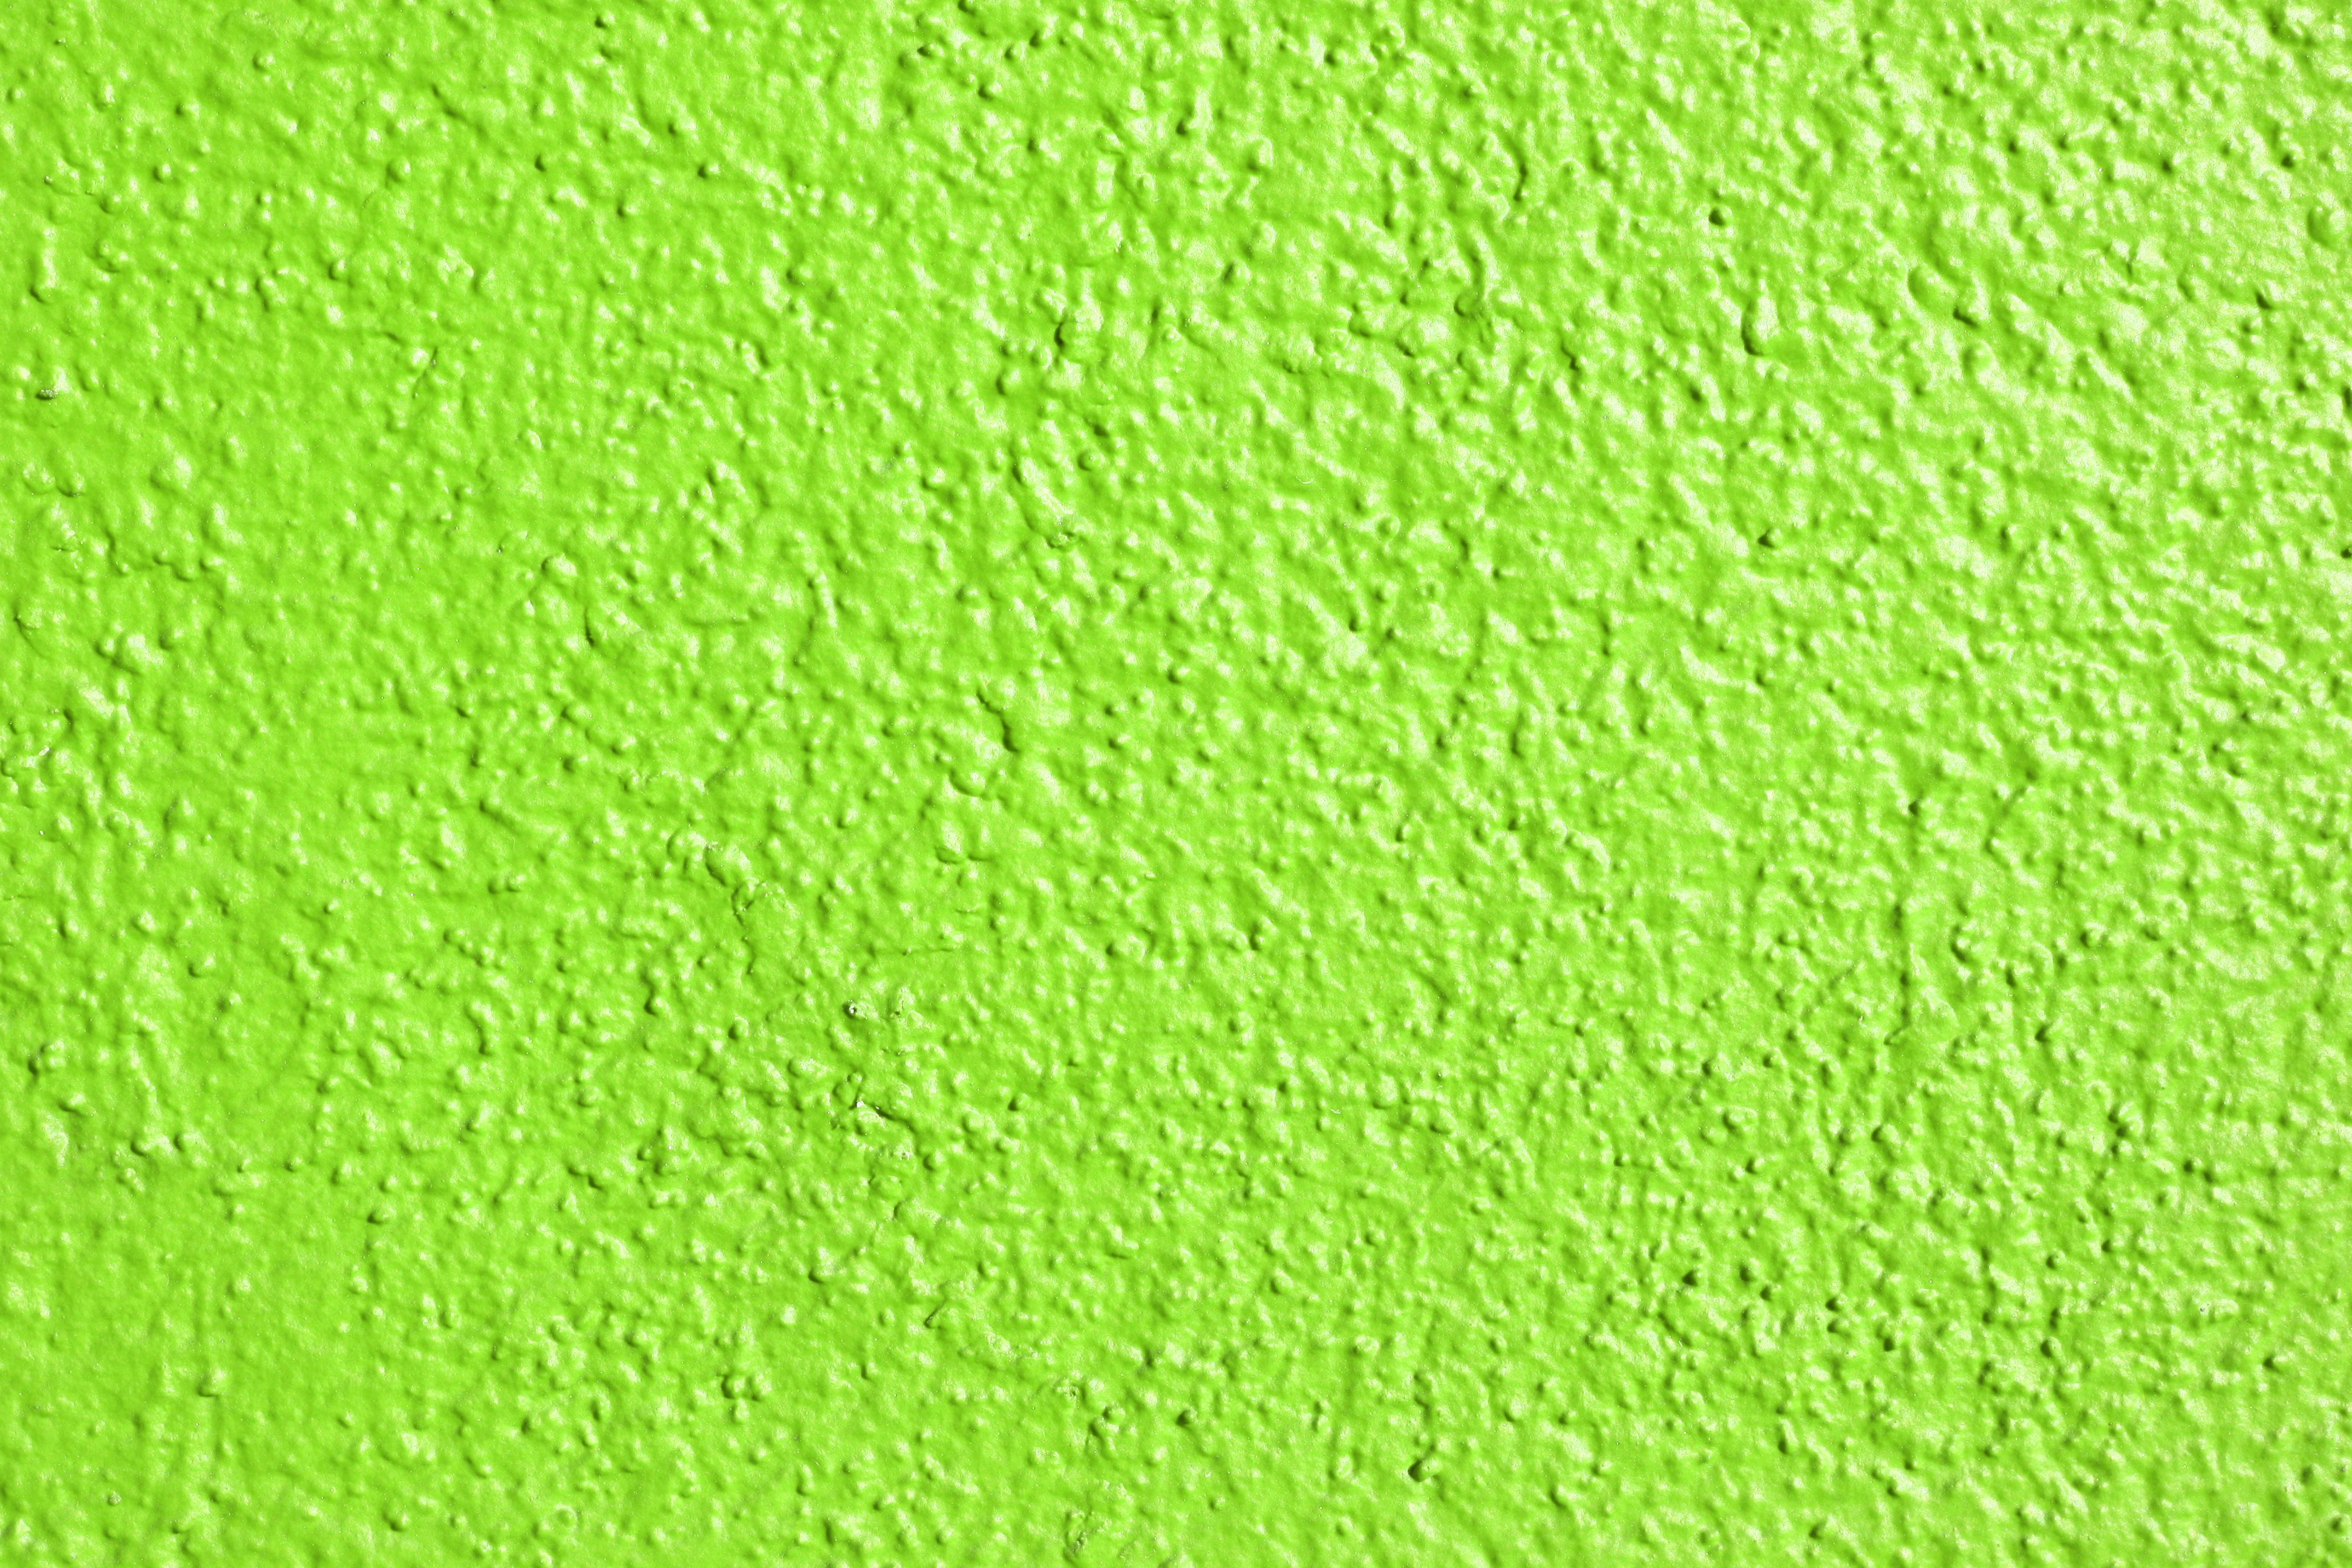 Lime Green Painted Wall Texture Picture Photograph Photos 3888x2592